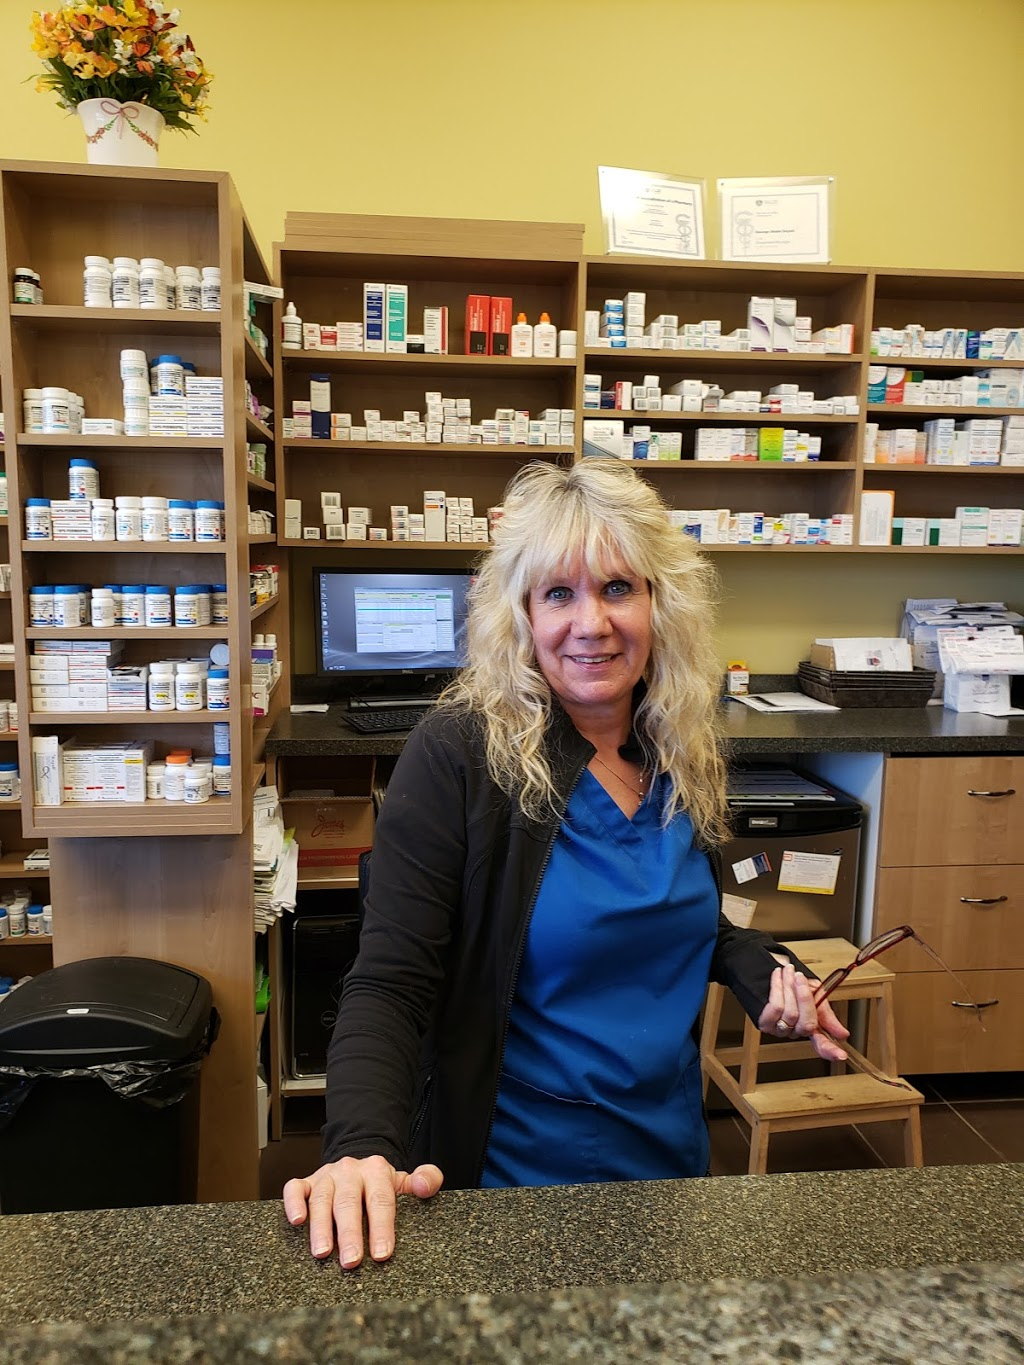 MAPLE MEDICAL PHARMACY   health   1079 Maple Ave, Milton, ON L9T 0A5, Canada   9058765111 OR +1 905-876-5111